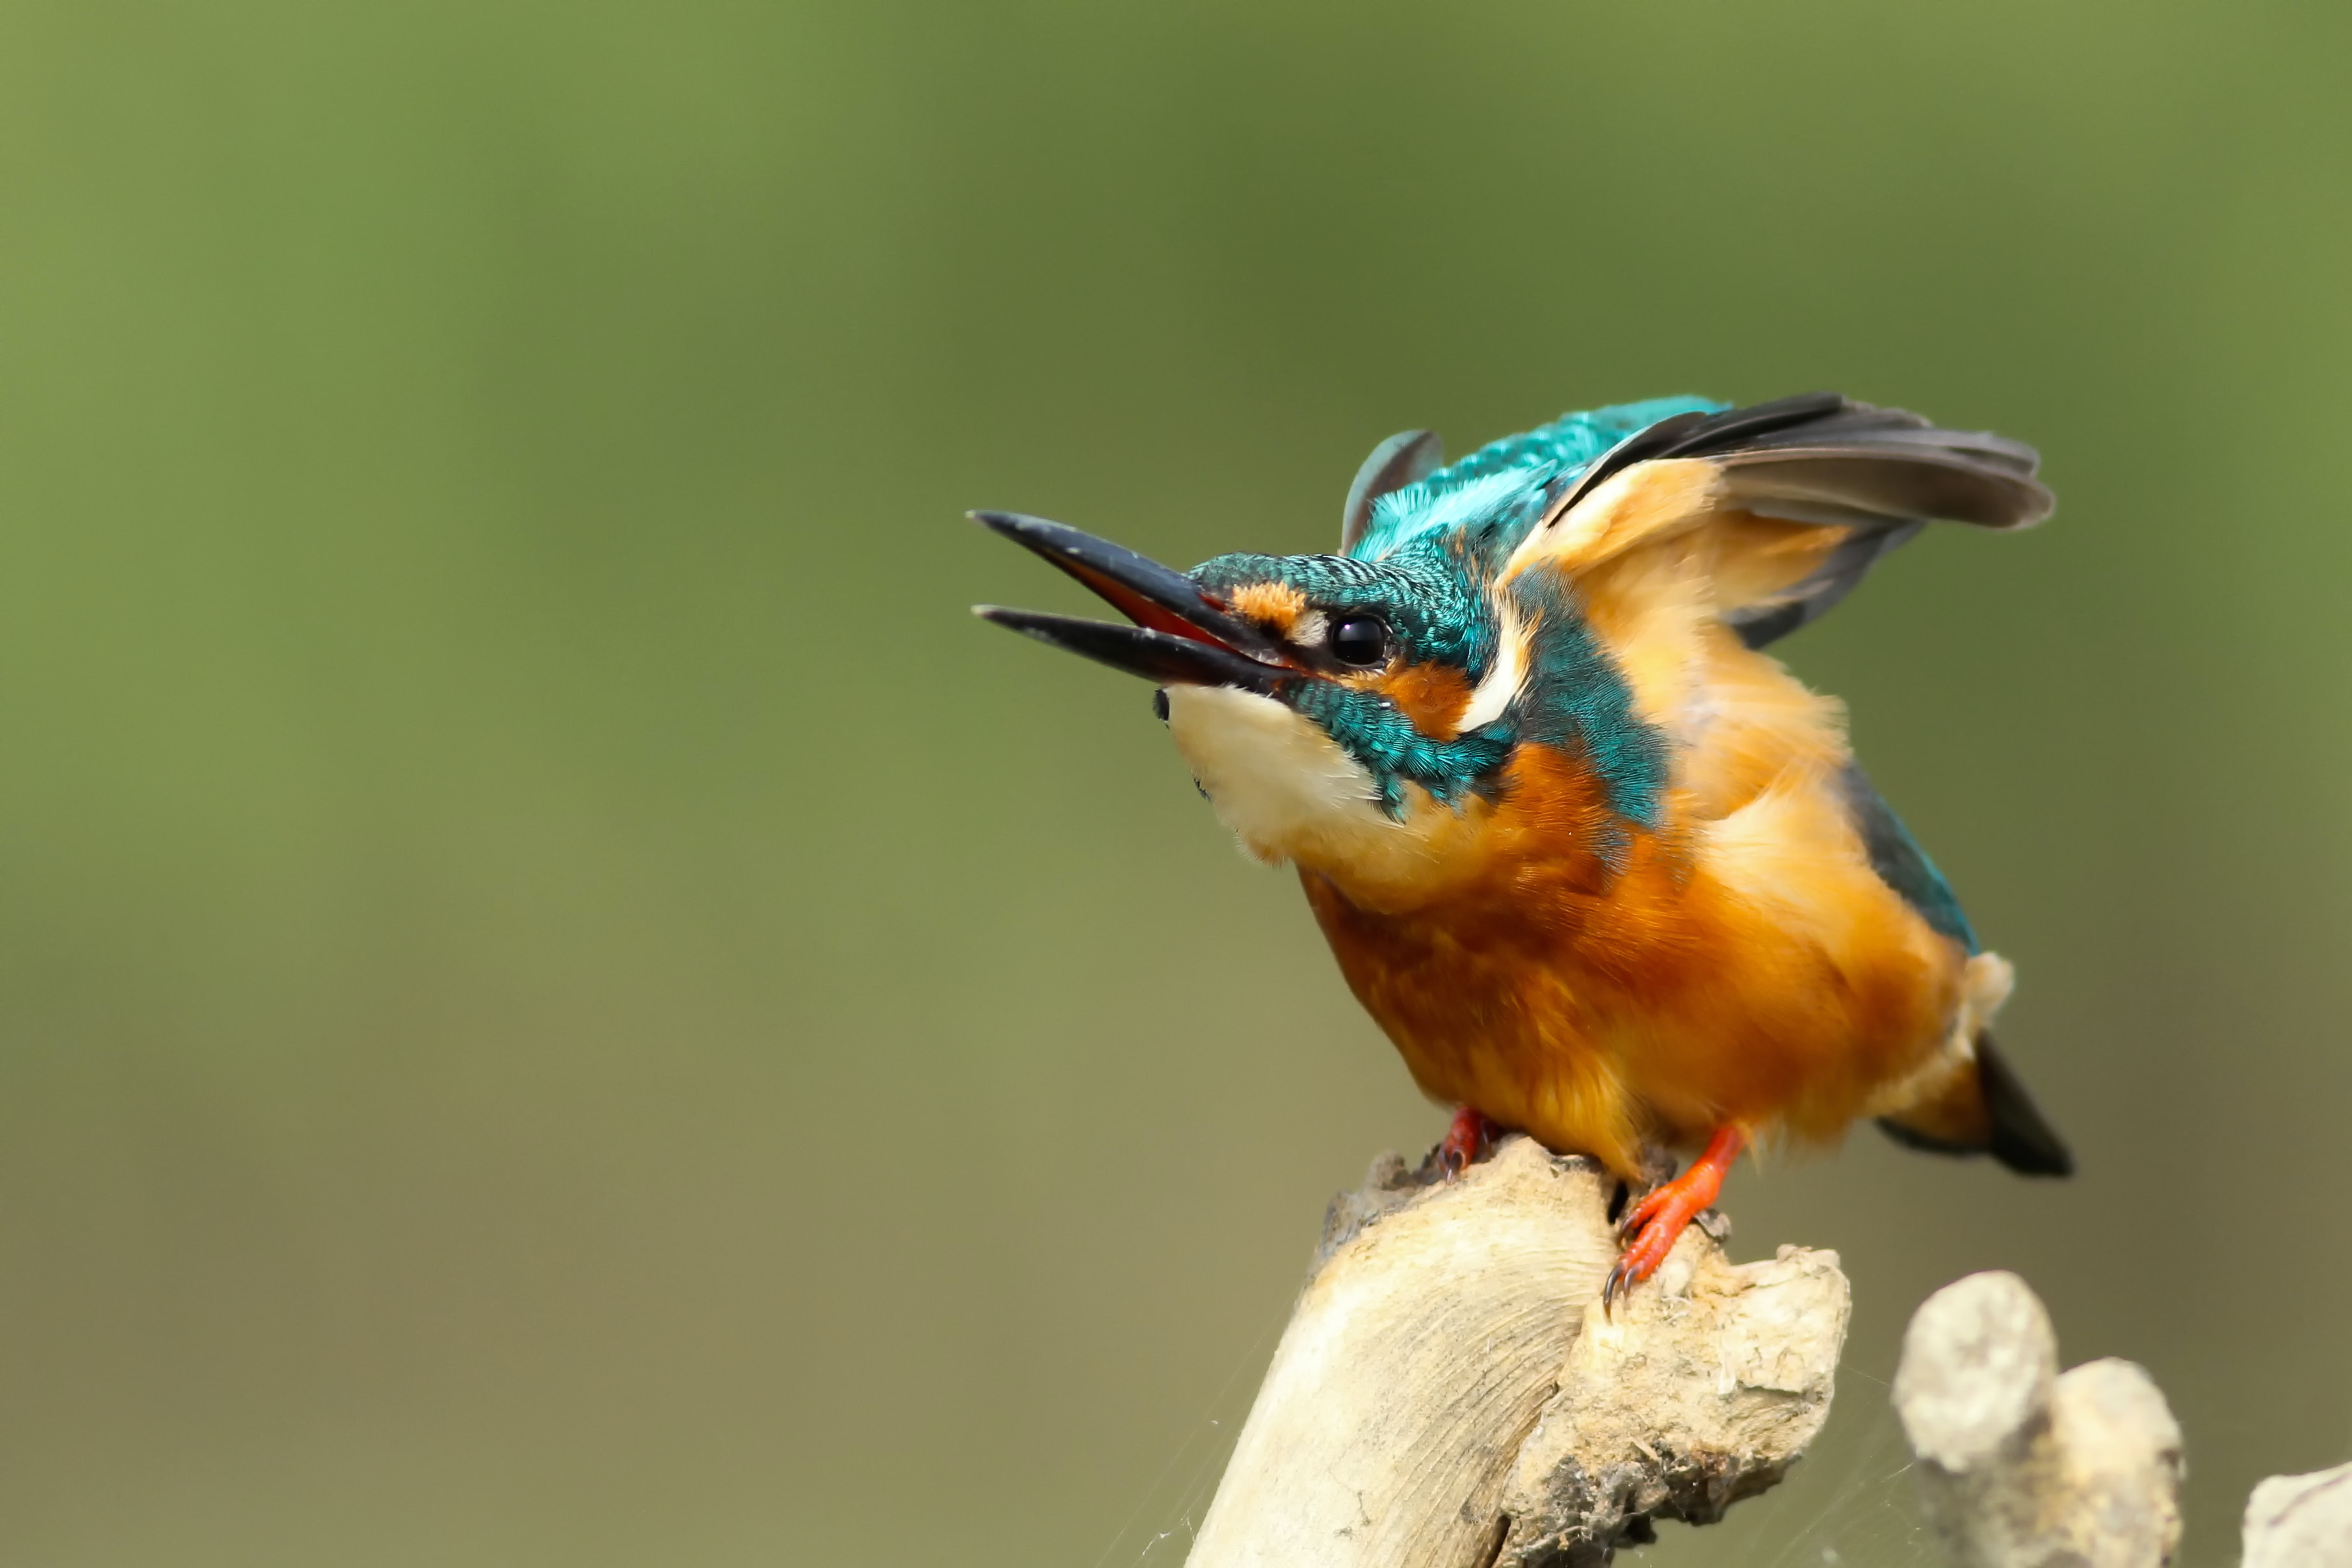 A kingfisher bird with its beak open about to take flight perched on the edge of a branch